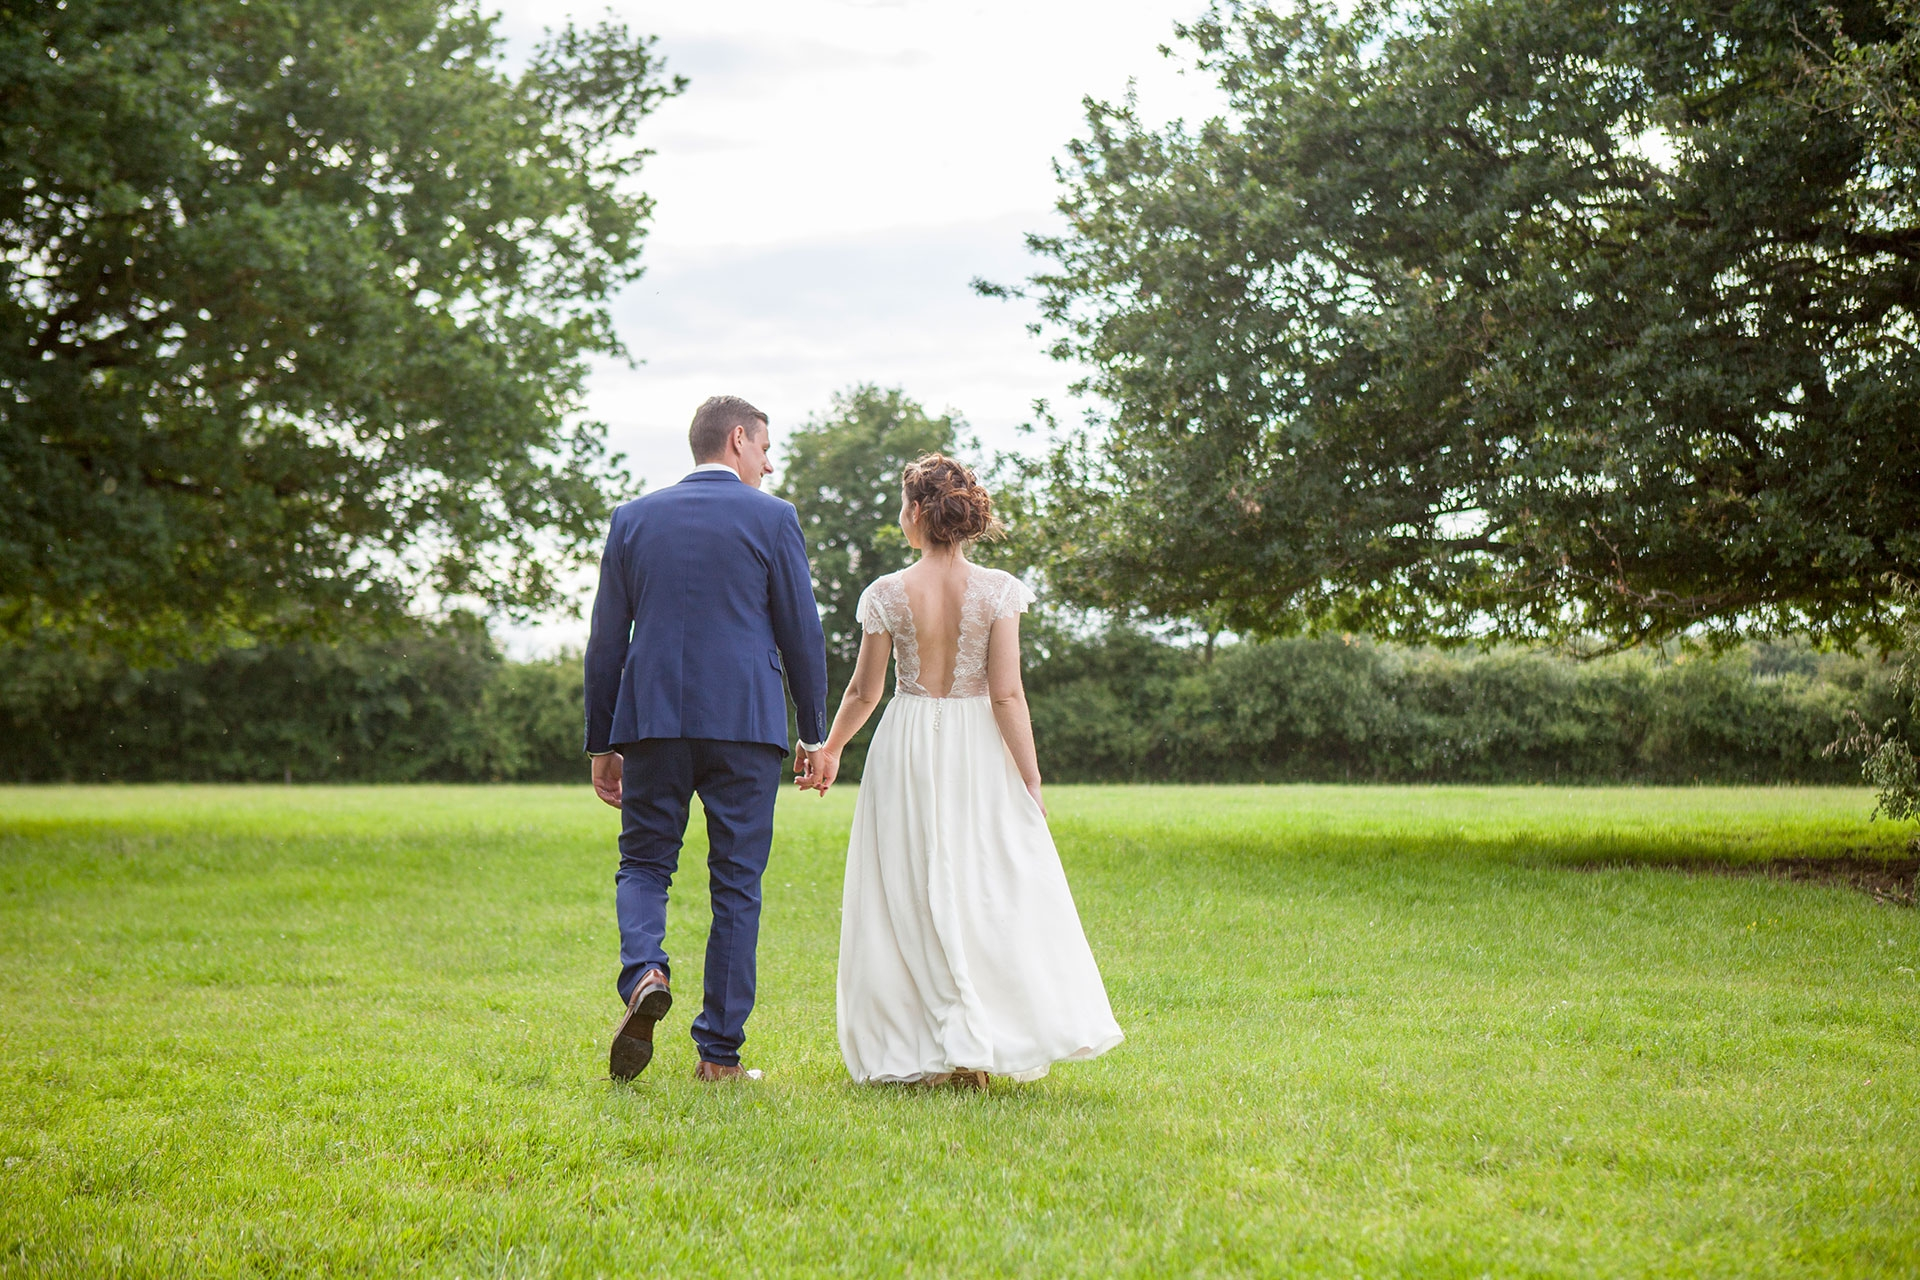 particuliers-evenements-mariages-oui-clementine&alexandre-57